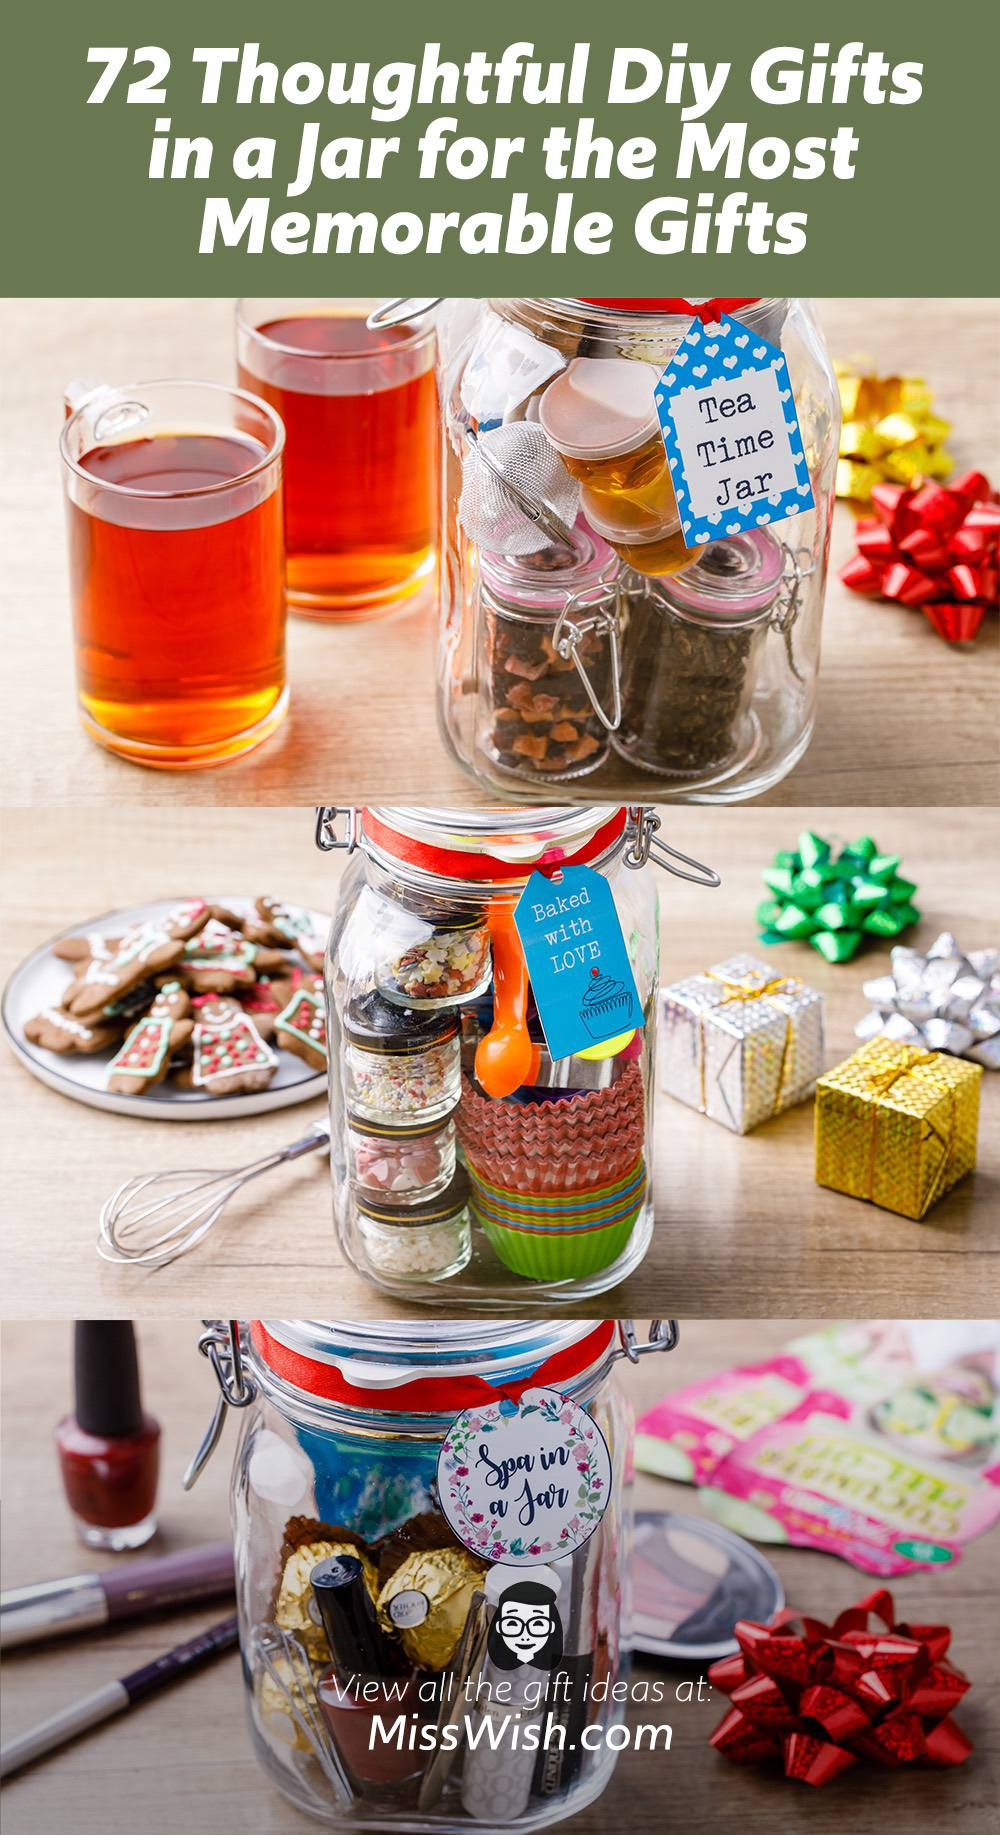 72 Thoughtful Diy Gifts in a Jar for the Most Memorable Homemade Gifts